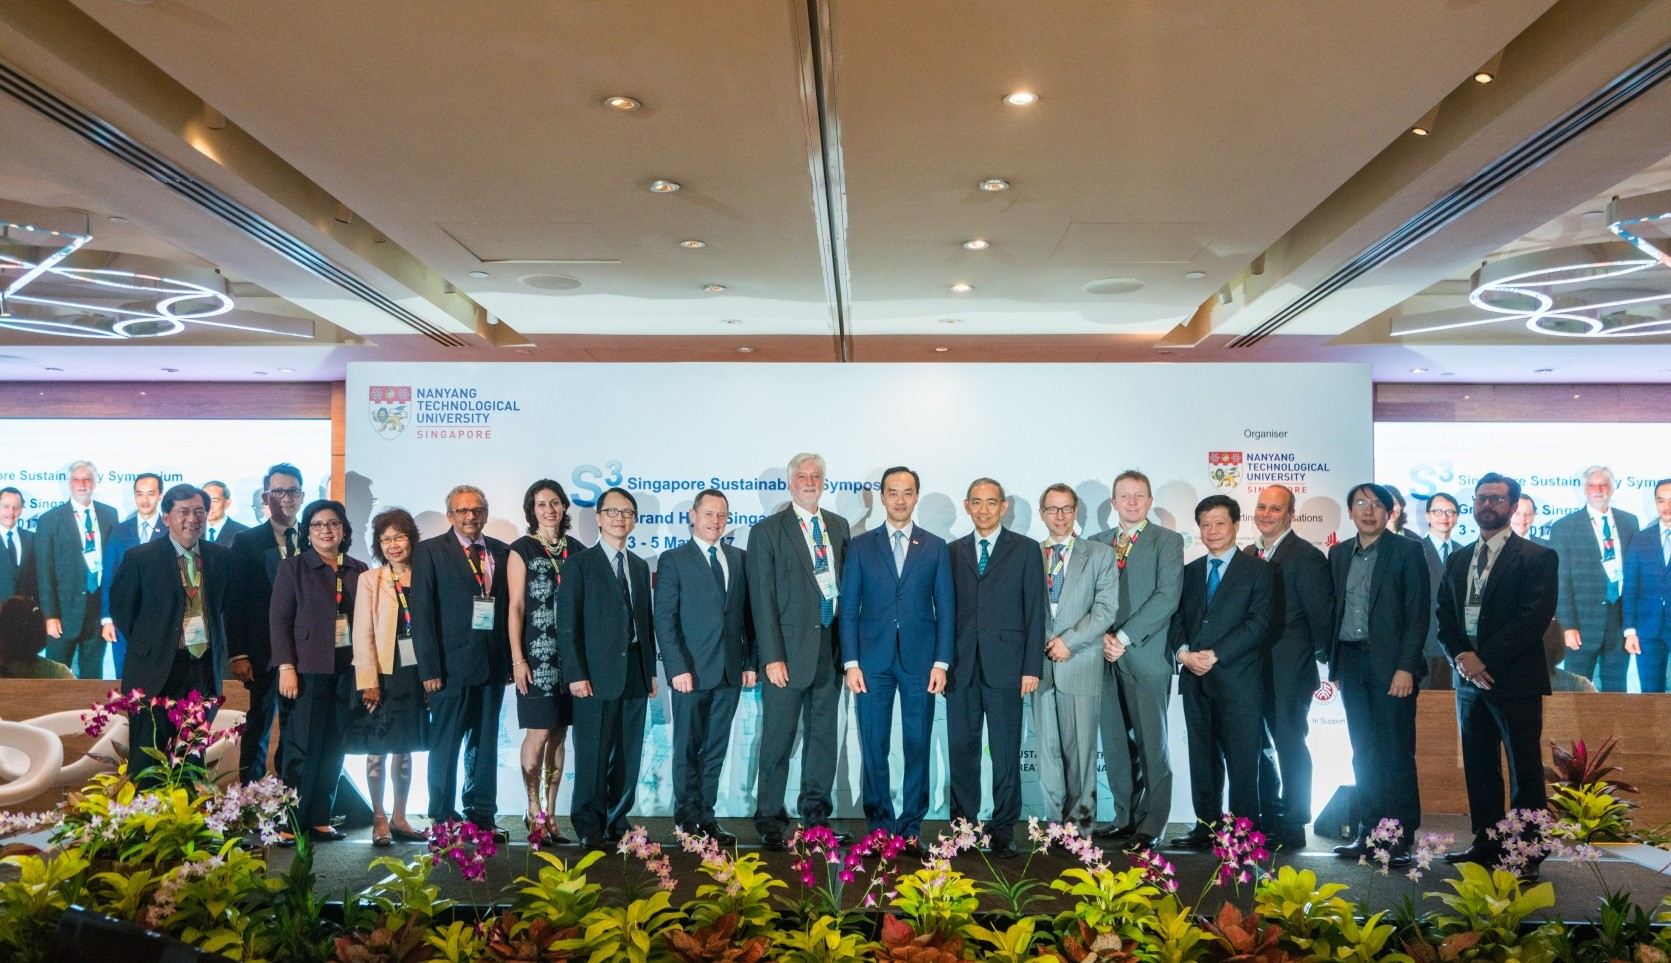 Speakers and Scientific Advisory Board Members of the Singapore Sustainability Symposium (S3): John Keung Kam Yin (Singapore's Building and Construction Authority), Chang Chew Hung (NIE), Mely Caballero-Anthony (NTU), Koh Kheng Lian (NUS), Kamlesh Yagnik (Surat), Lauren Sorkin (Rockefeller 100 Resilient Cities), Stanley Yip (Peking University), Simon Upton (New Zealand Commissioner for the Environment), Alexander J.B. Zehnder (NTU), Koh Poh Koon (Senior Minister of State for National Development and Trade & Industry), Choi Shing Kwok (Permanent Secretary of Ministry of the Environment and Water Resources), Anders Karlsson (Elsevier), Per-Christer Lund (Innovation Norway), Lam Khin Yong (NTU), Gustav Guggenheimer (Hans Andersson Recycling), Victor Tay (NTU) and William Henry Clune (NTU).